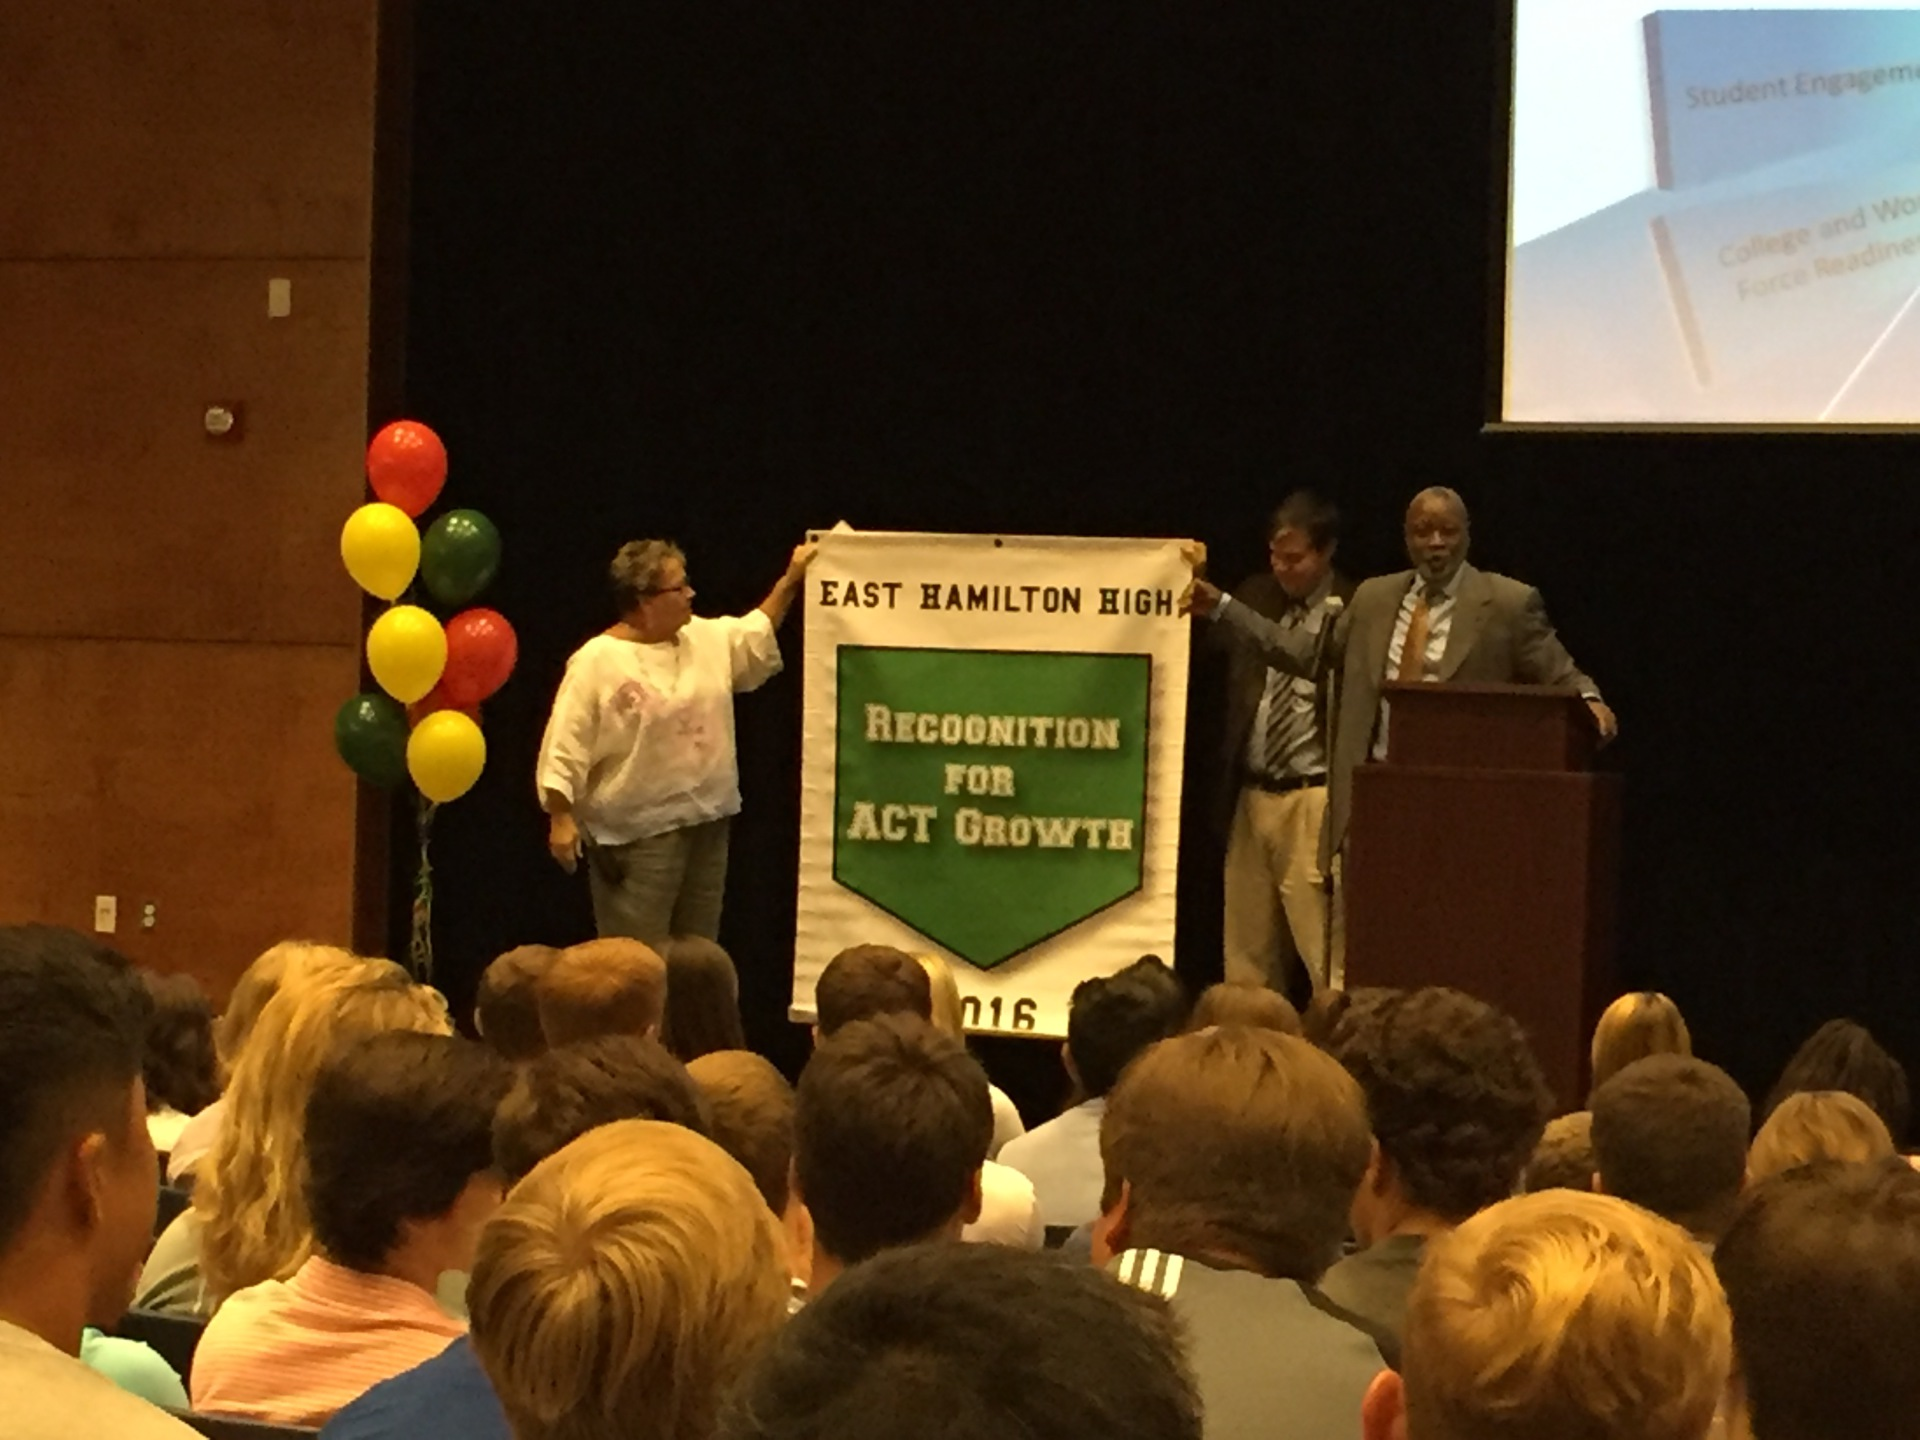 East Hamilton being awarded their banner of recognition for ACT excellence.